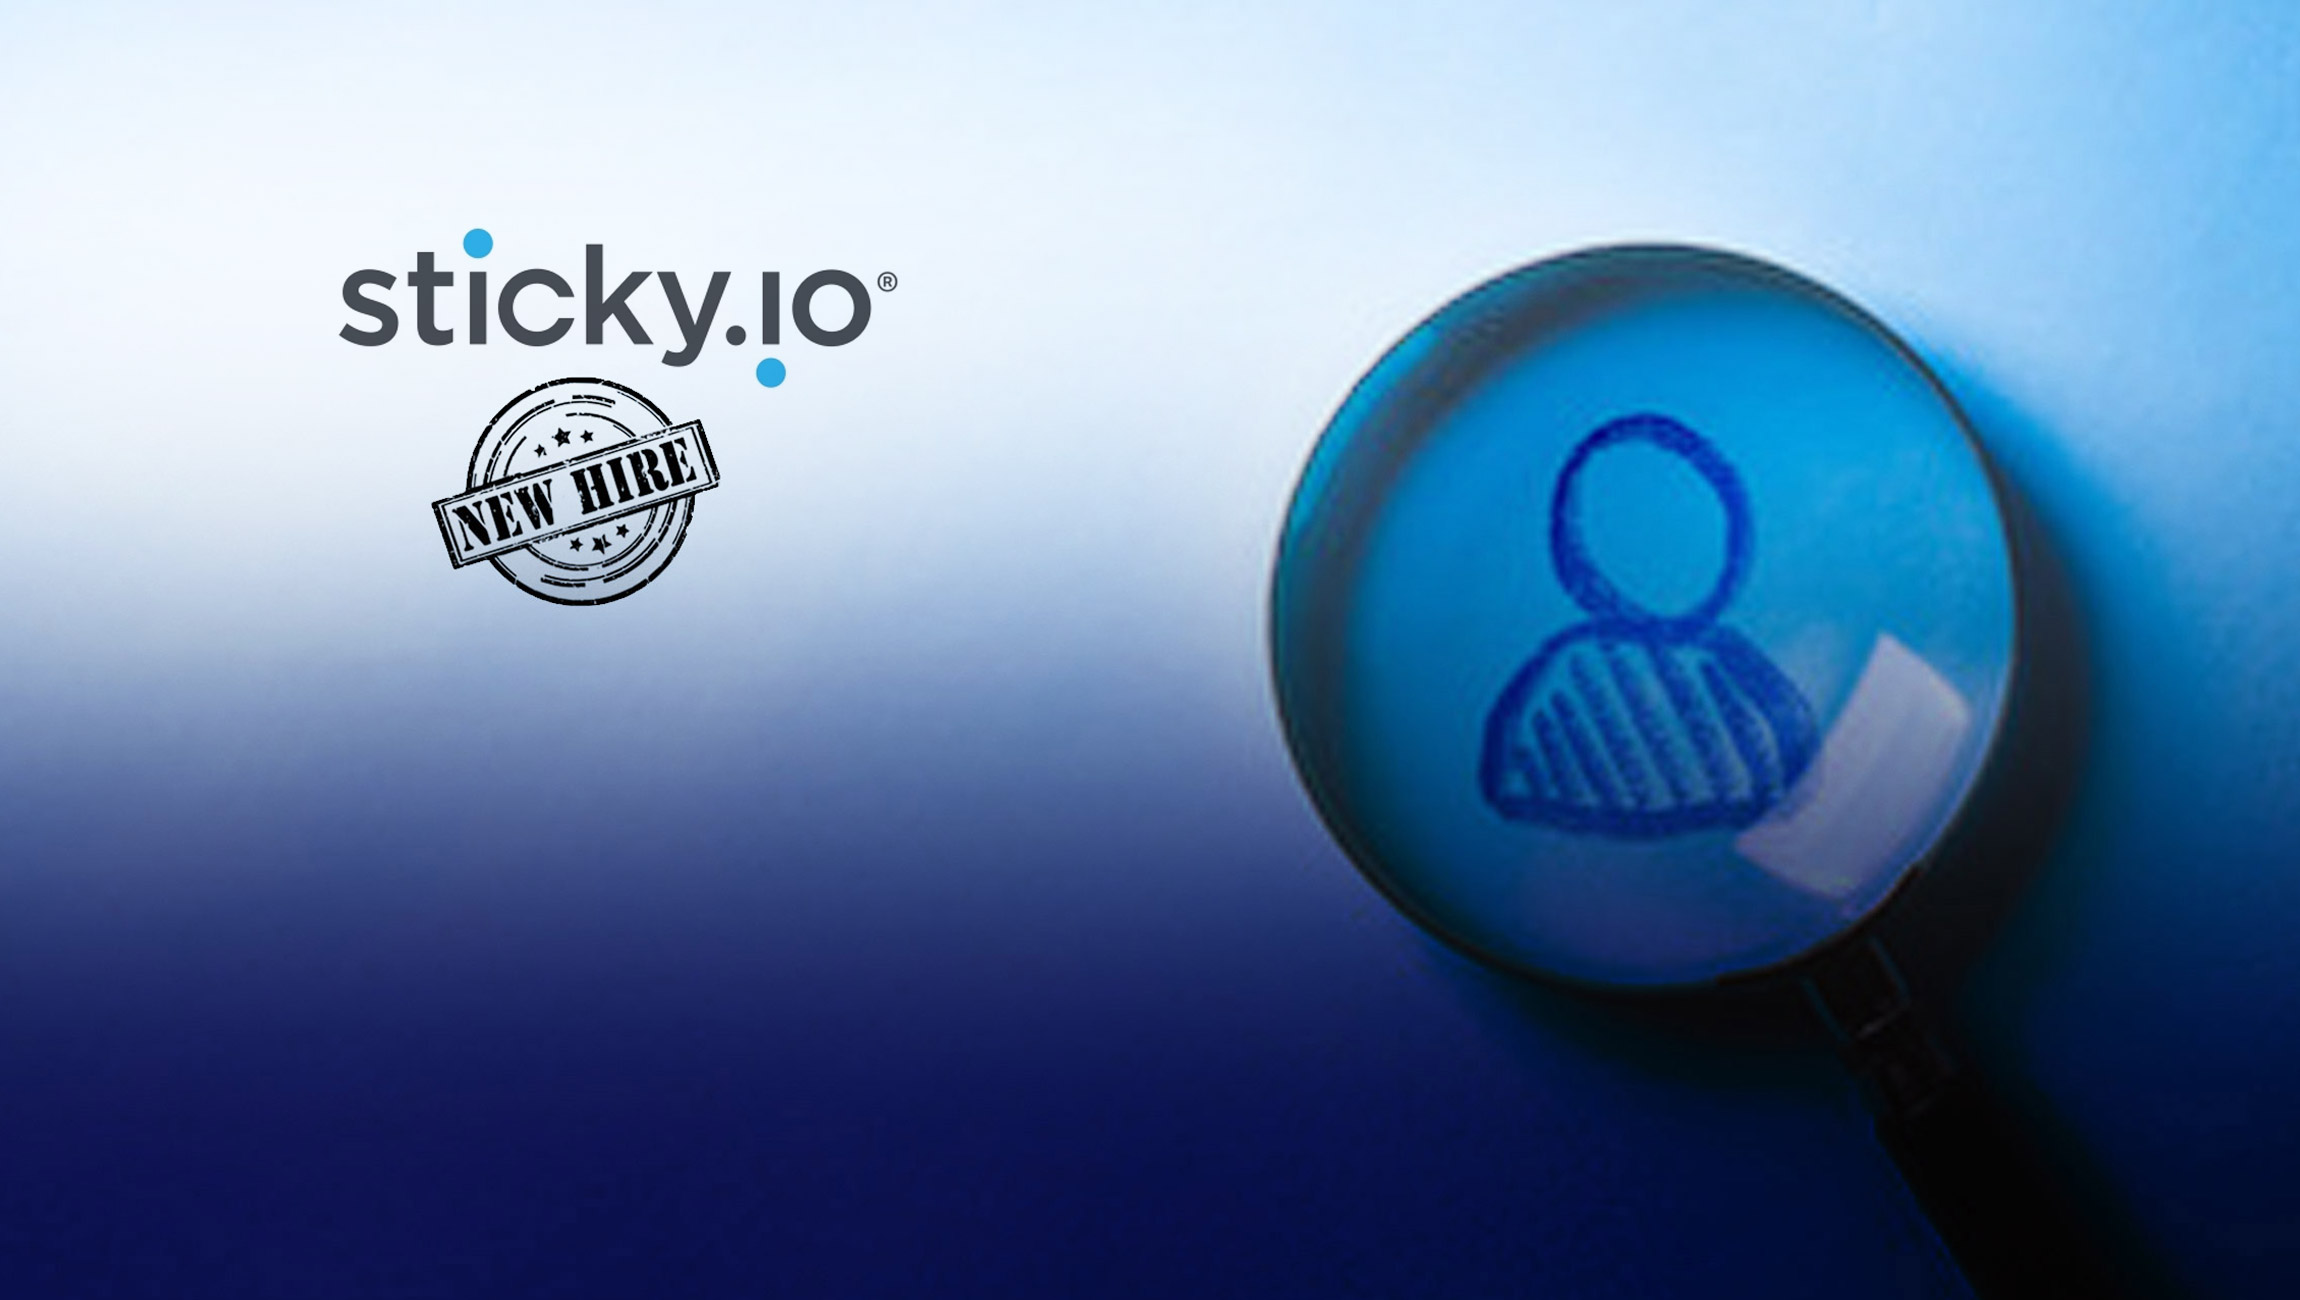 sticky.io Appoints New Chief Technology Officer To Lead Platform Growth